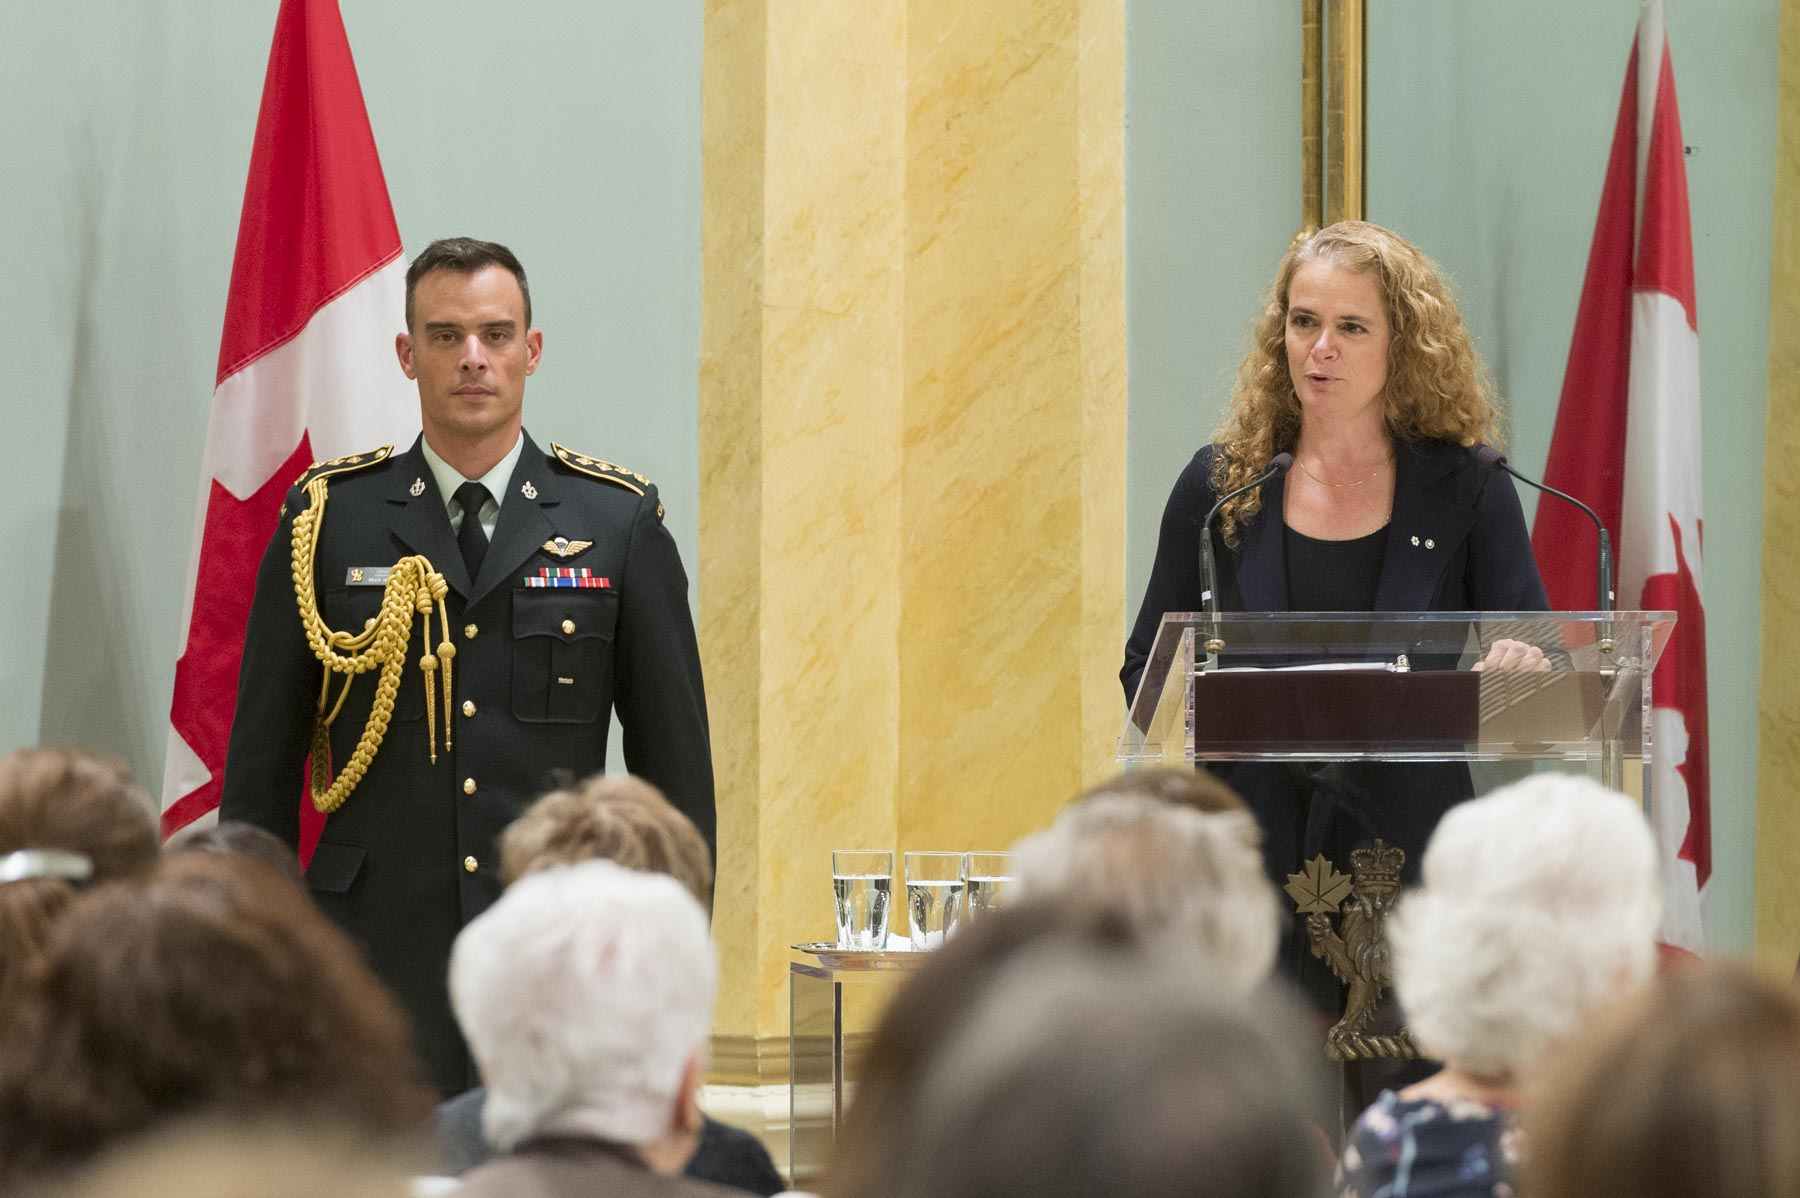 The Governor General delivered remarks to congratulate the recipients.